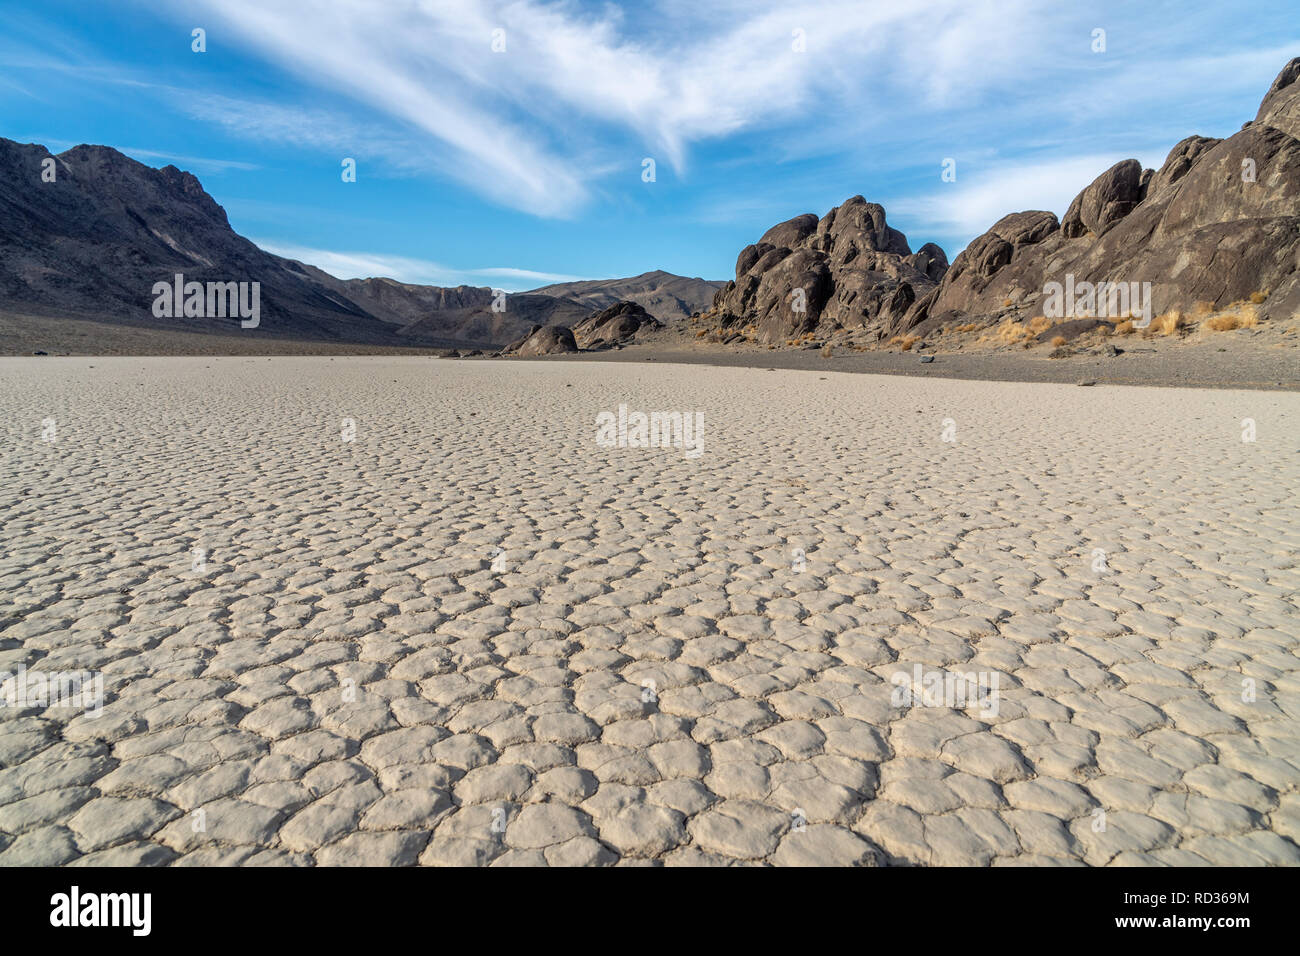 Dry lake bed formed polygon patterns, usually 6 sided, Racetrack Playa and The Grandstand Island, Death Valley National Park, California - Stock Image